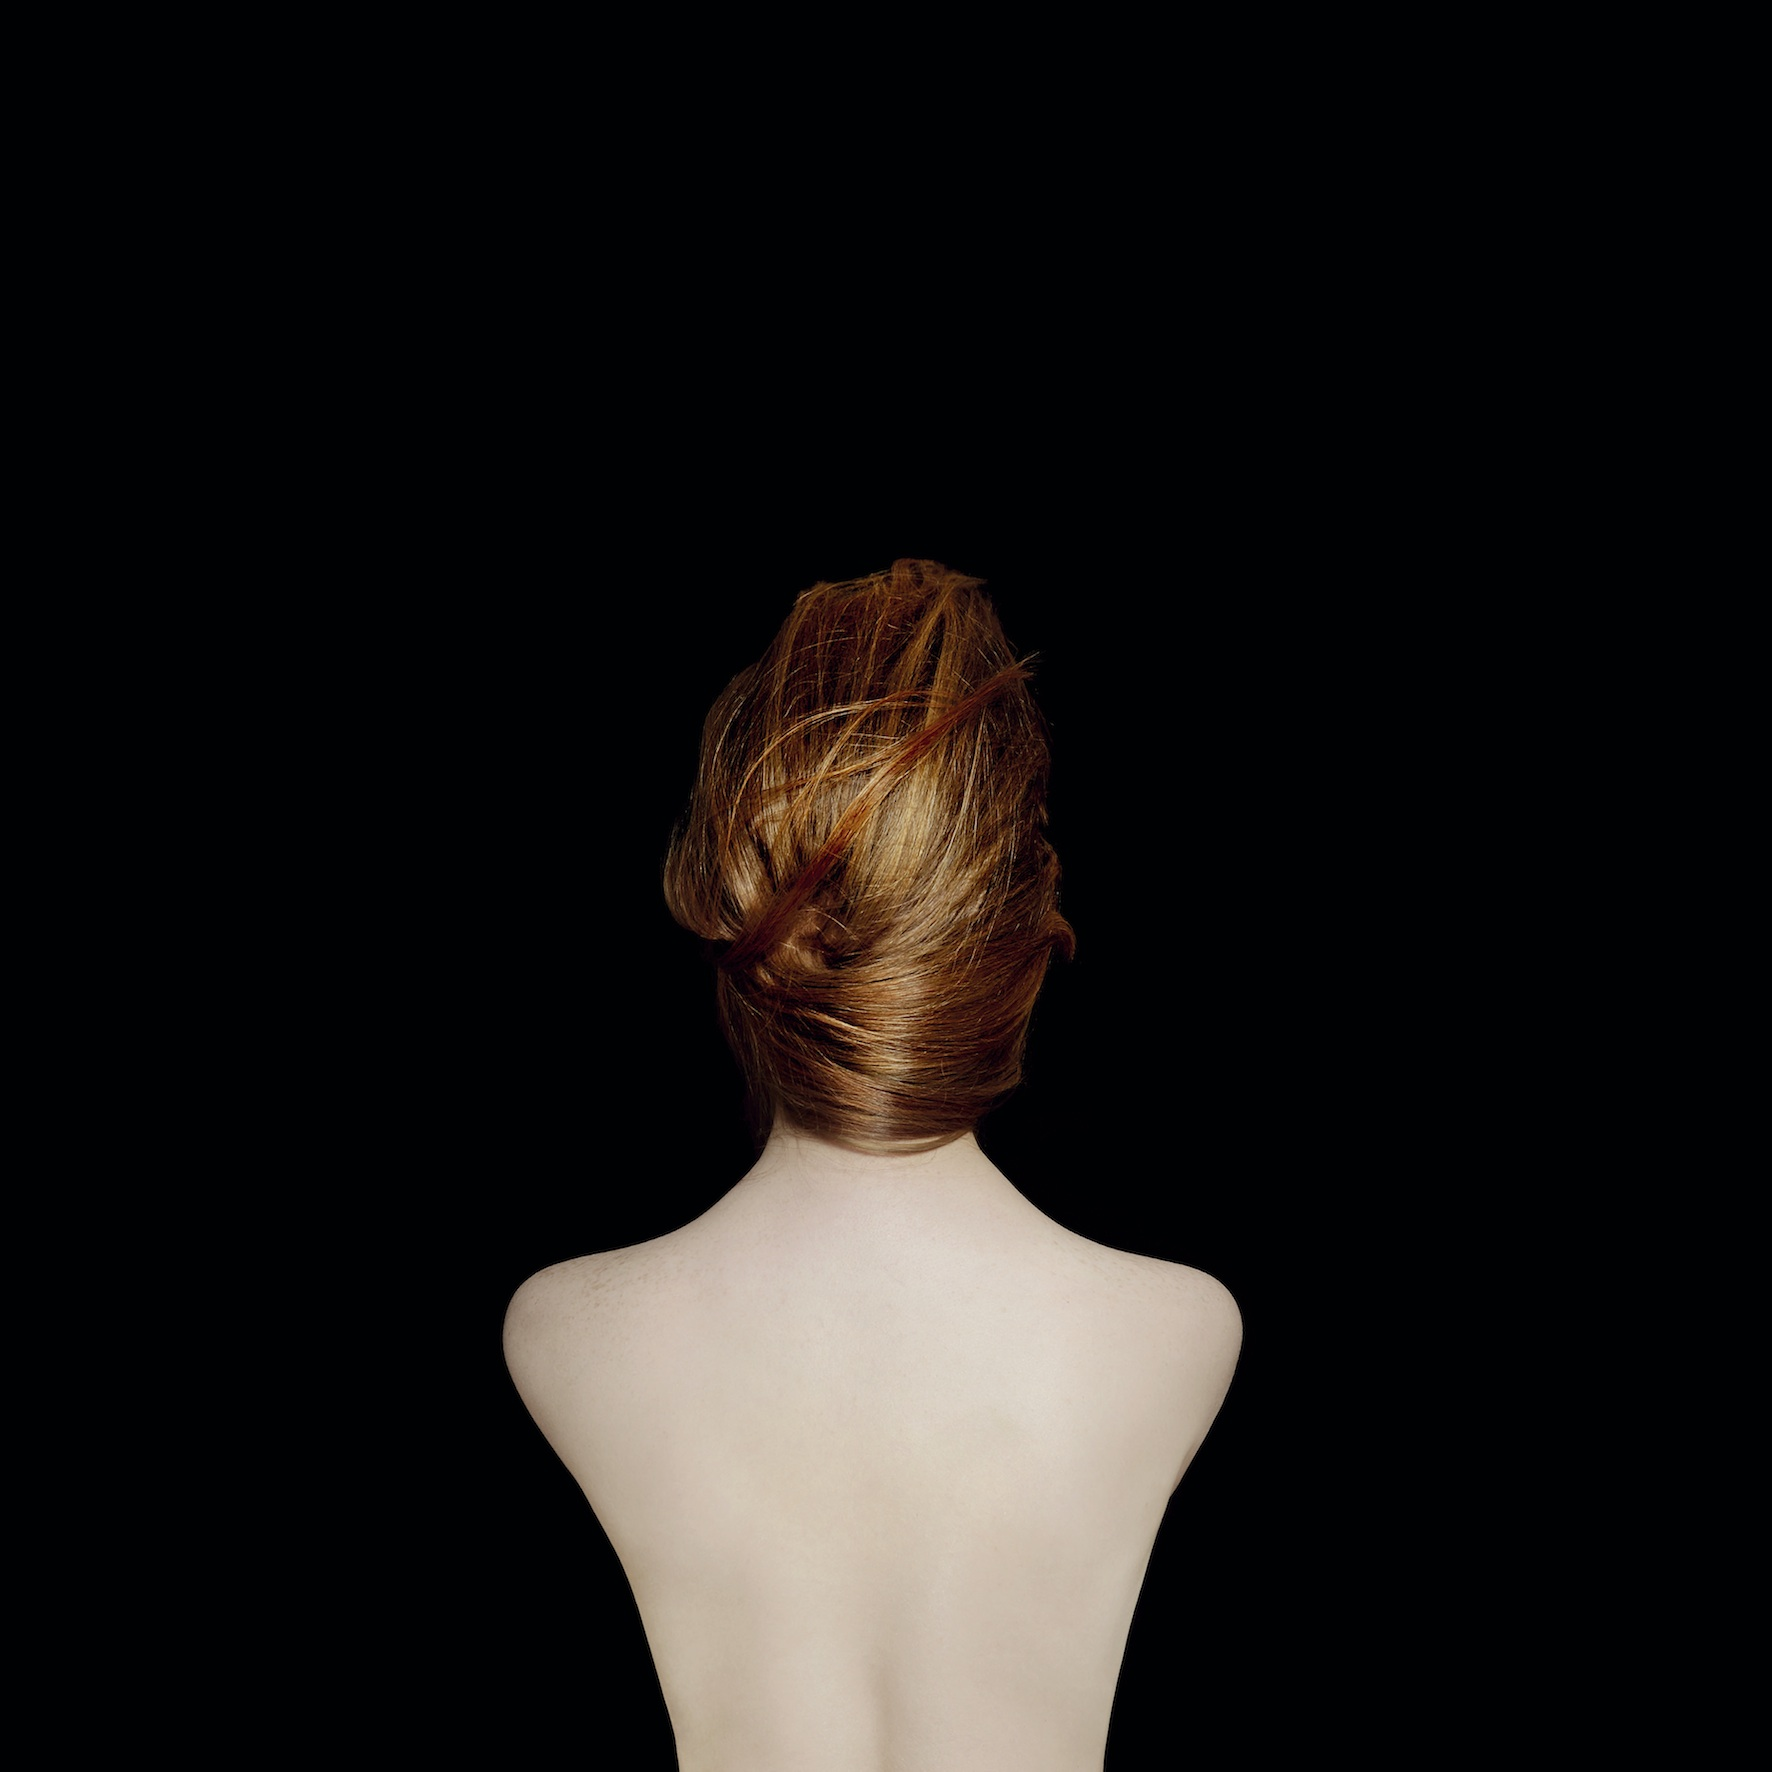 WhoMadeWho – Ember (Get Physical)